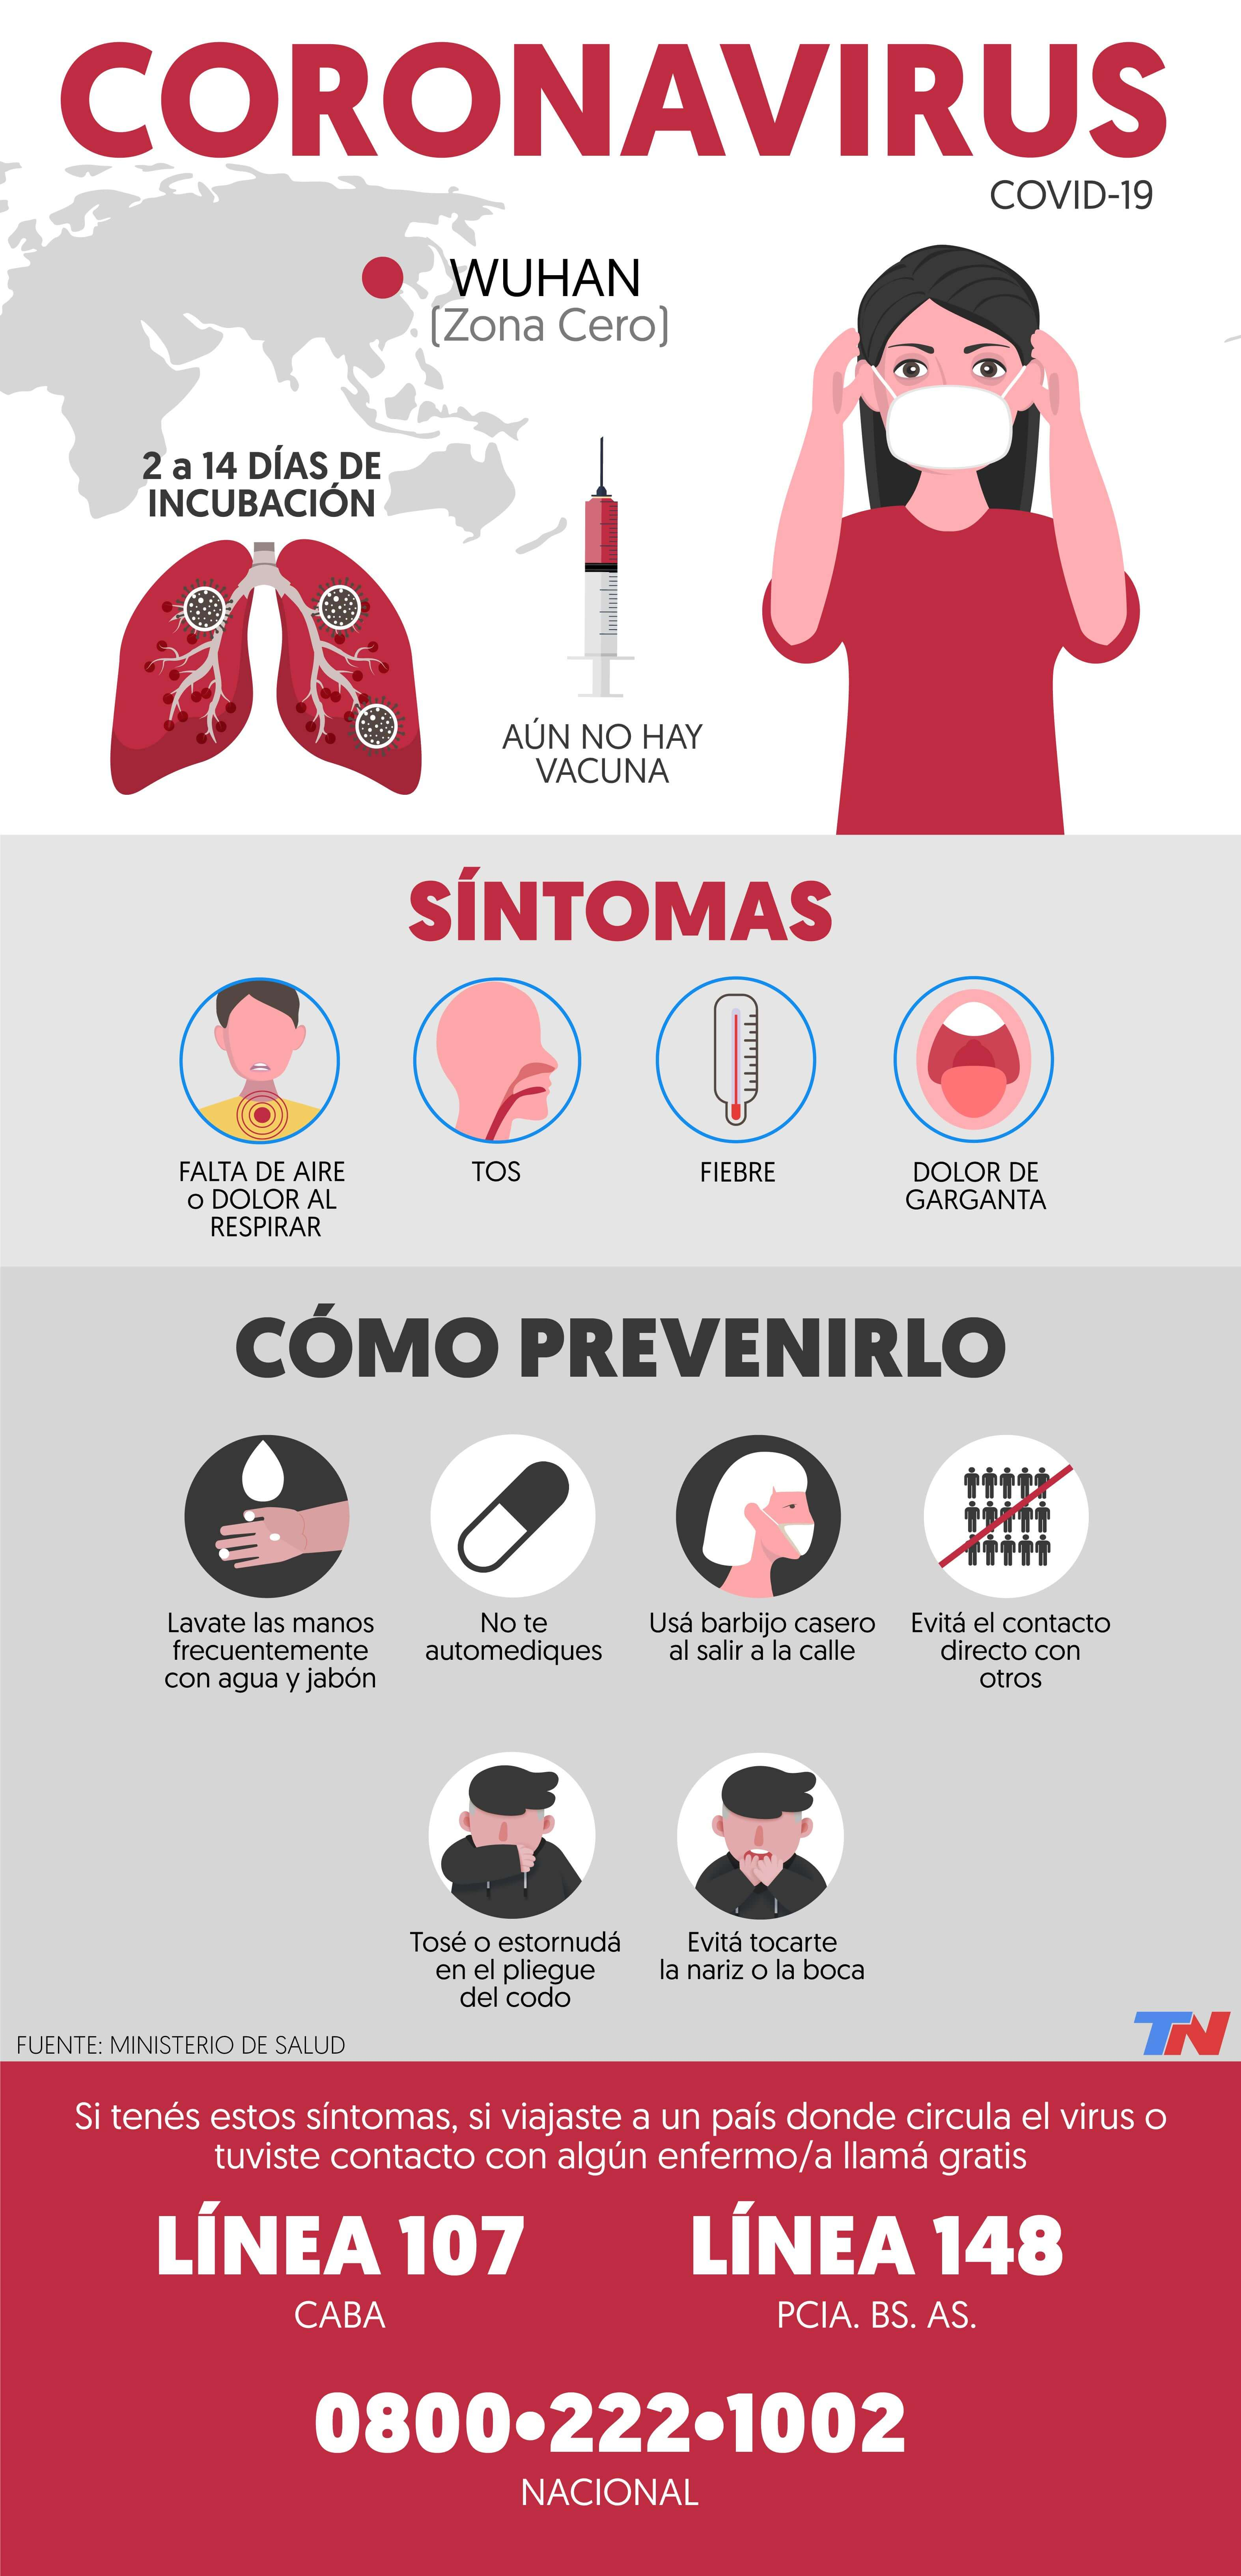 What are the symptoms of coronavirus and how is it prevented (Infographic: TN.com.ar).